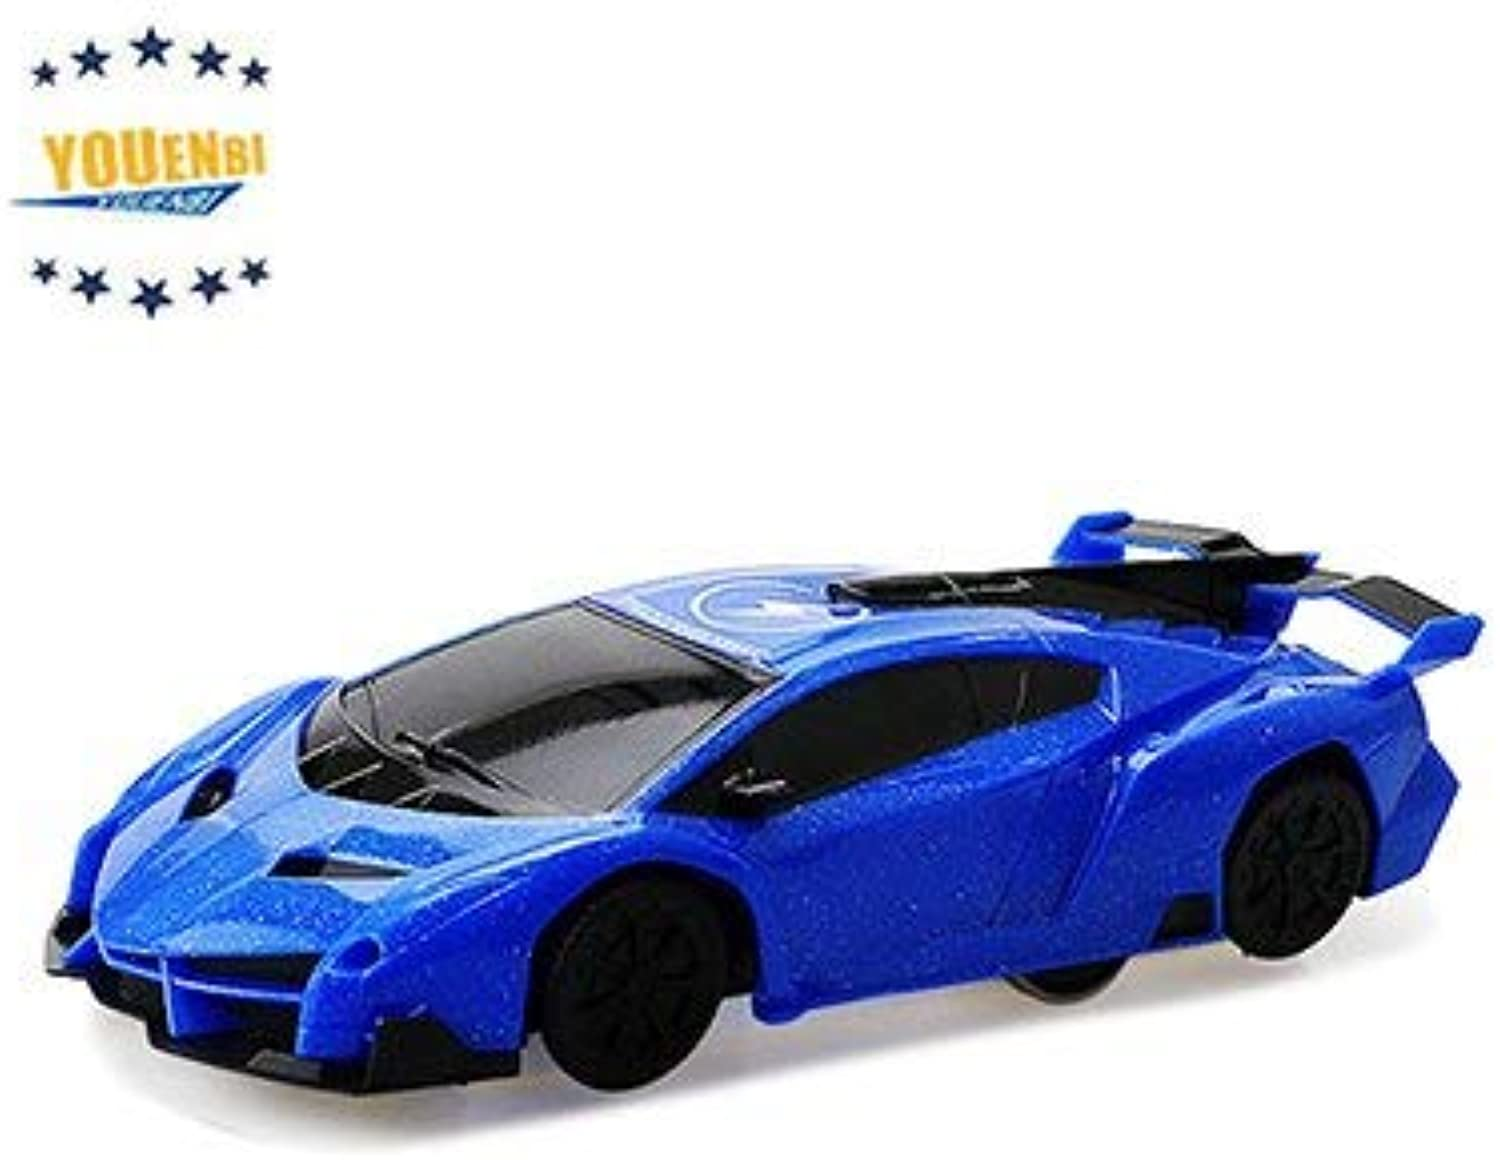 Generic Functional Radio Control Toys for Kids 1 28 Remote Control Stunt Car Wall Climbing rc Car bluee